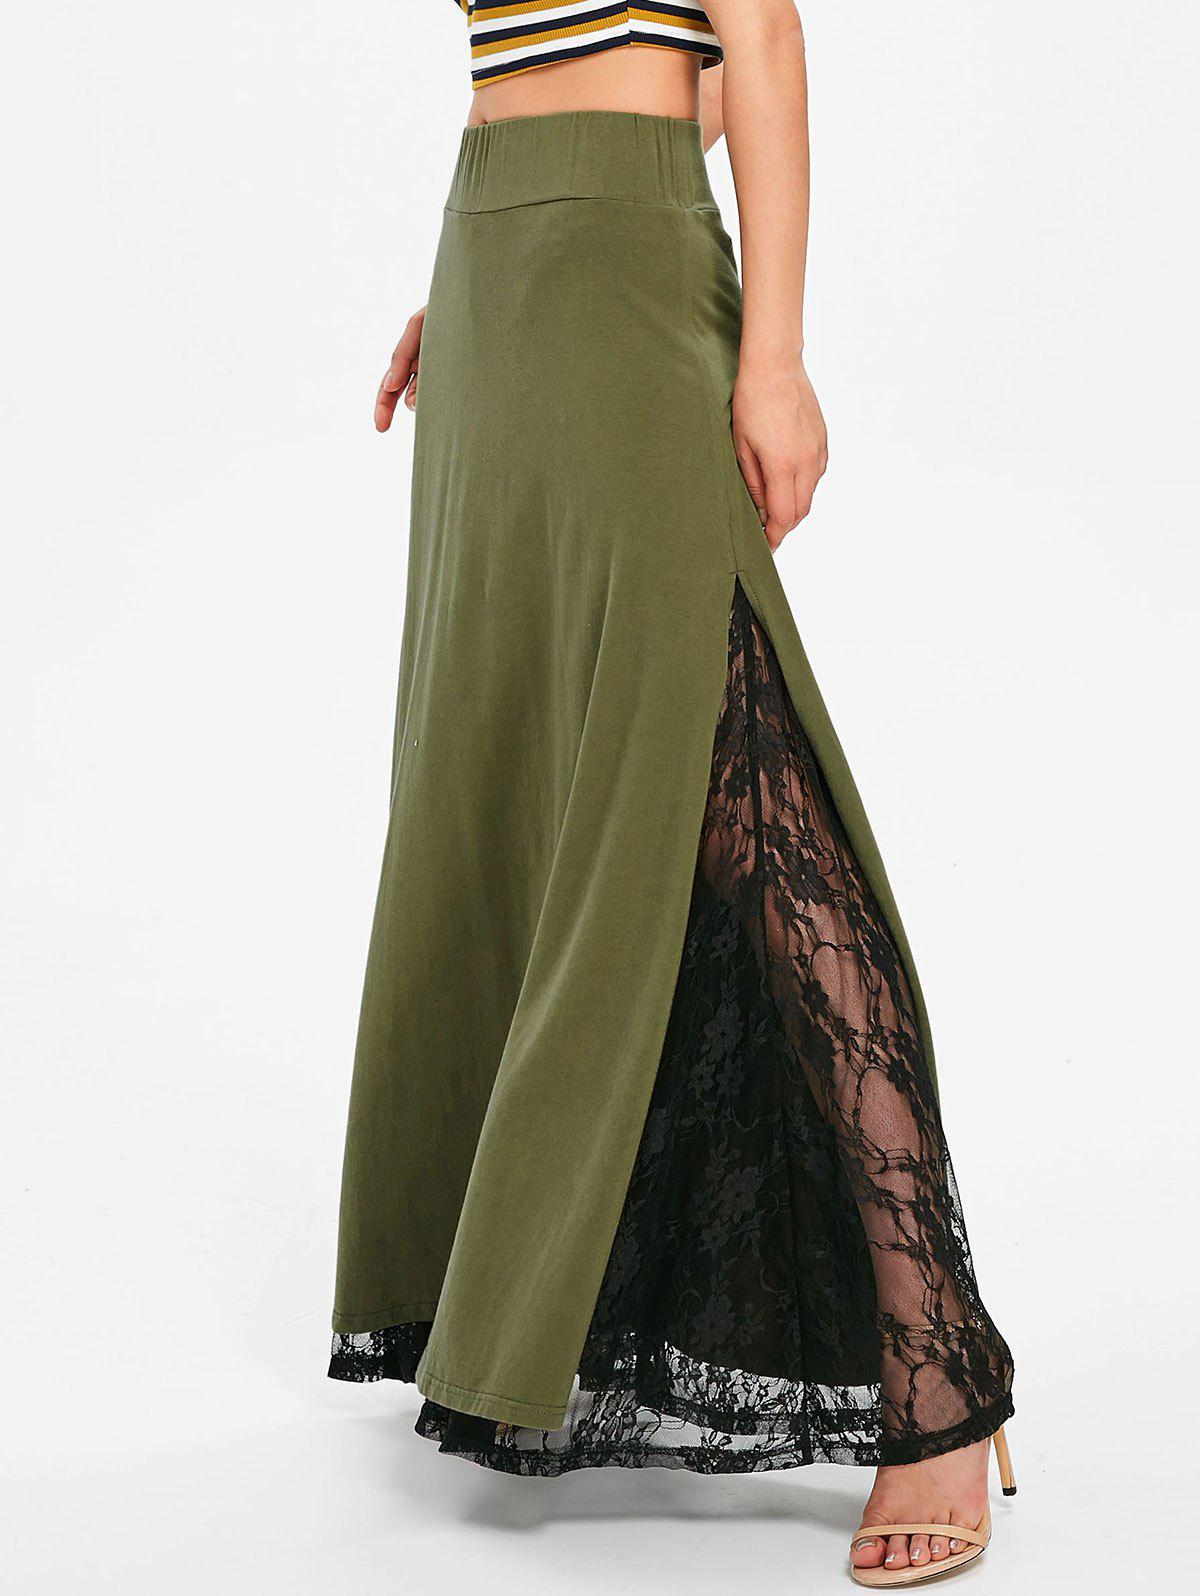 New High Waisted Lace Insert Long Skirt